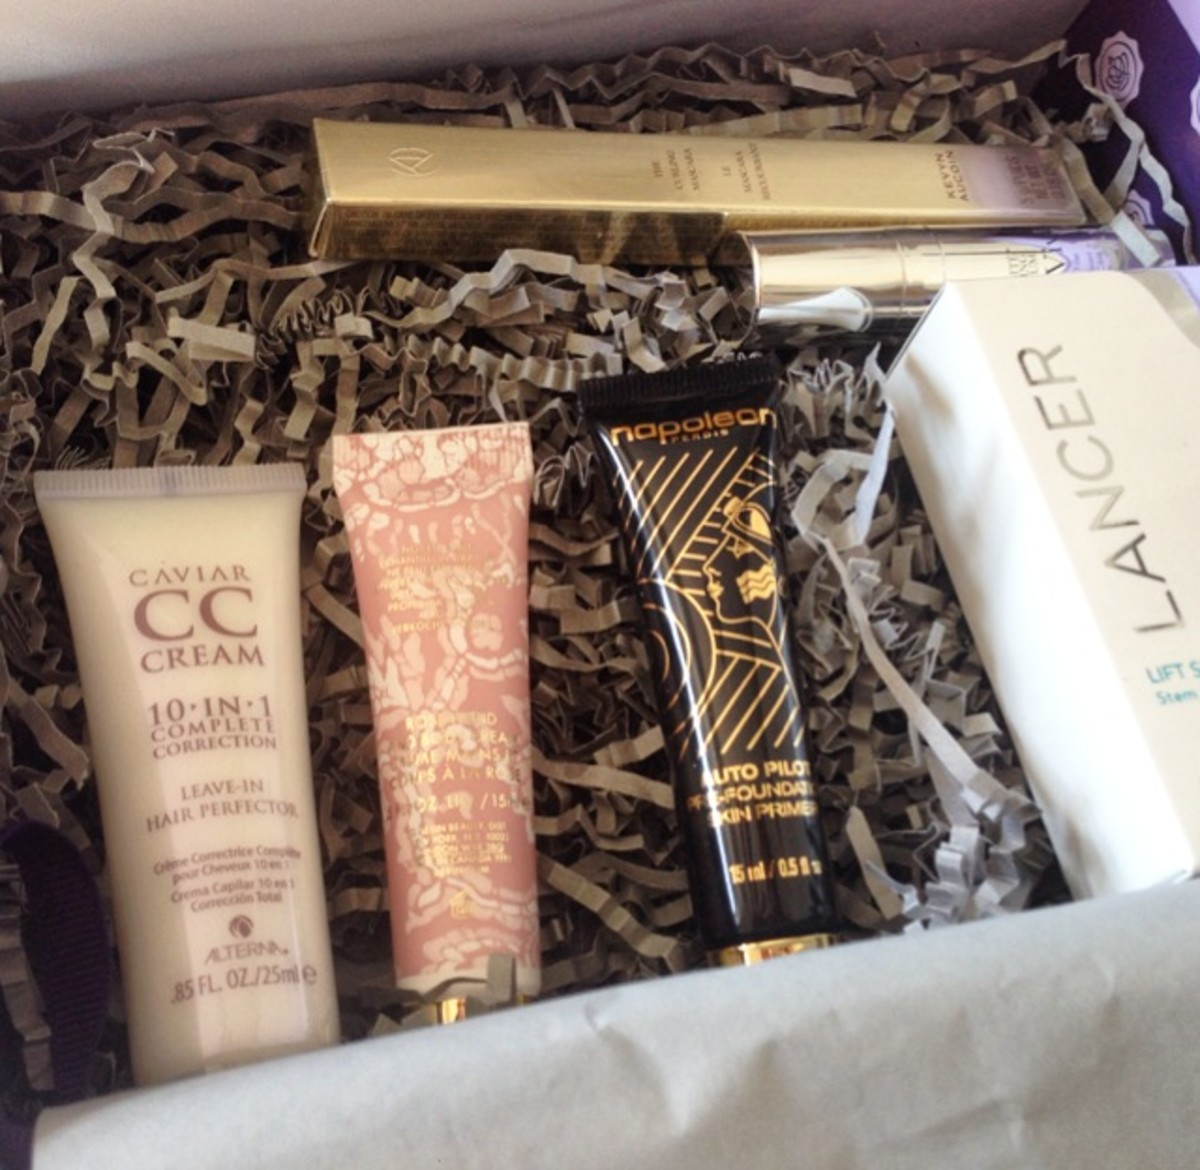 Unboxing the May Glossybox, which had a special collaboration with Bergdorf Goodman. We even got a BG gift card for $25!